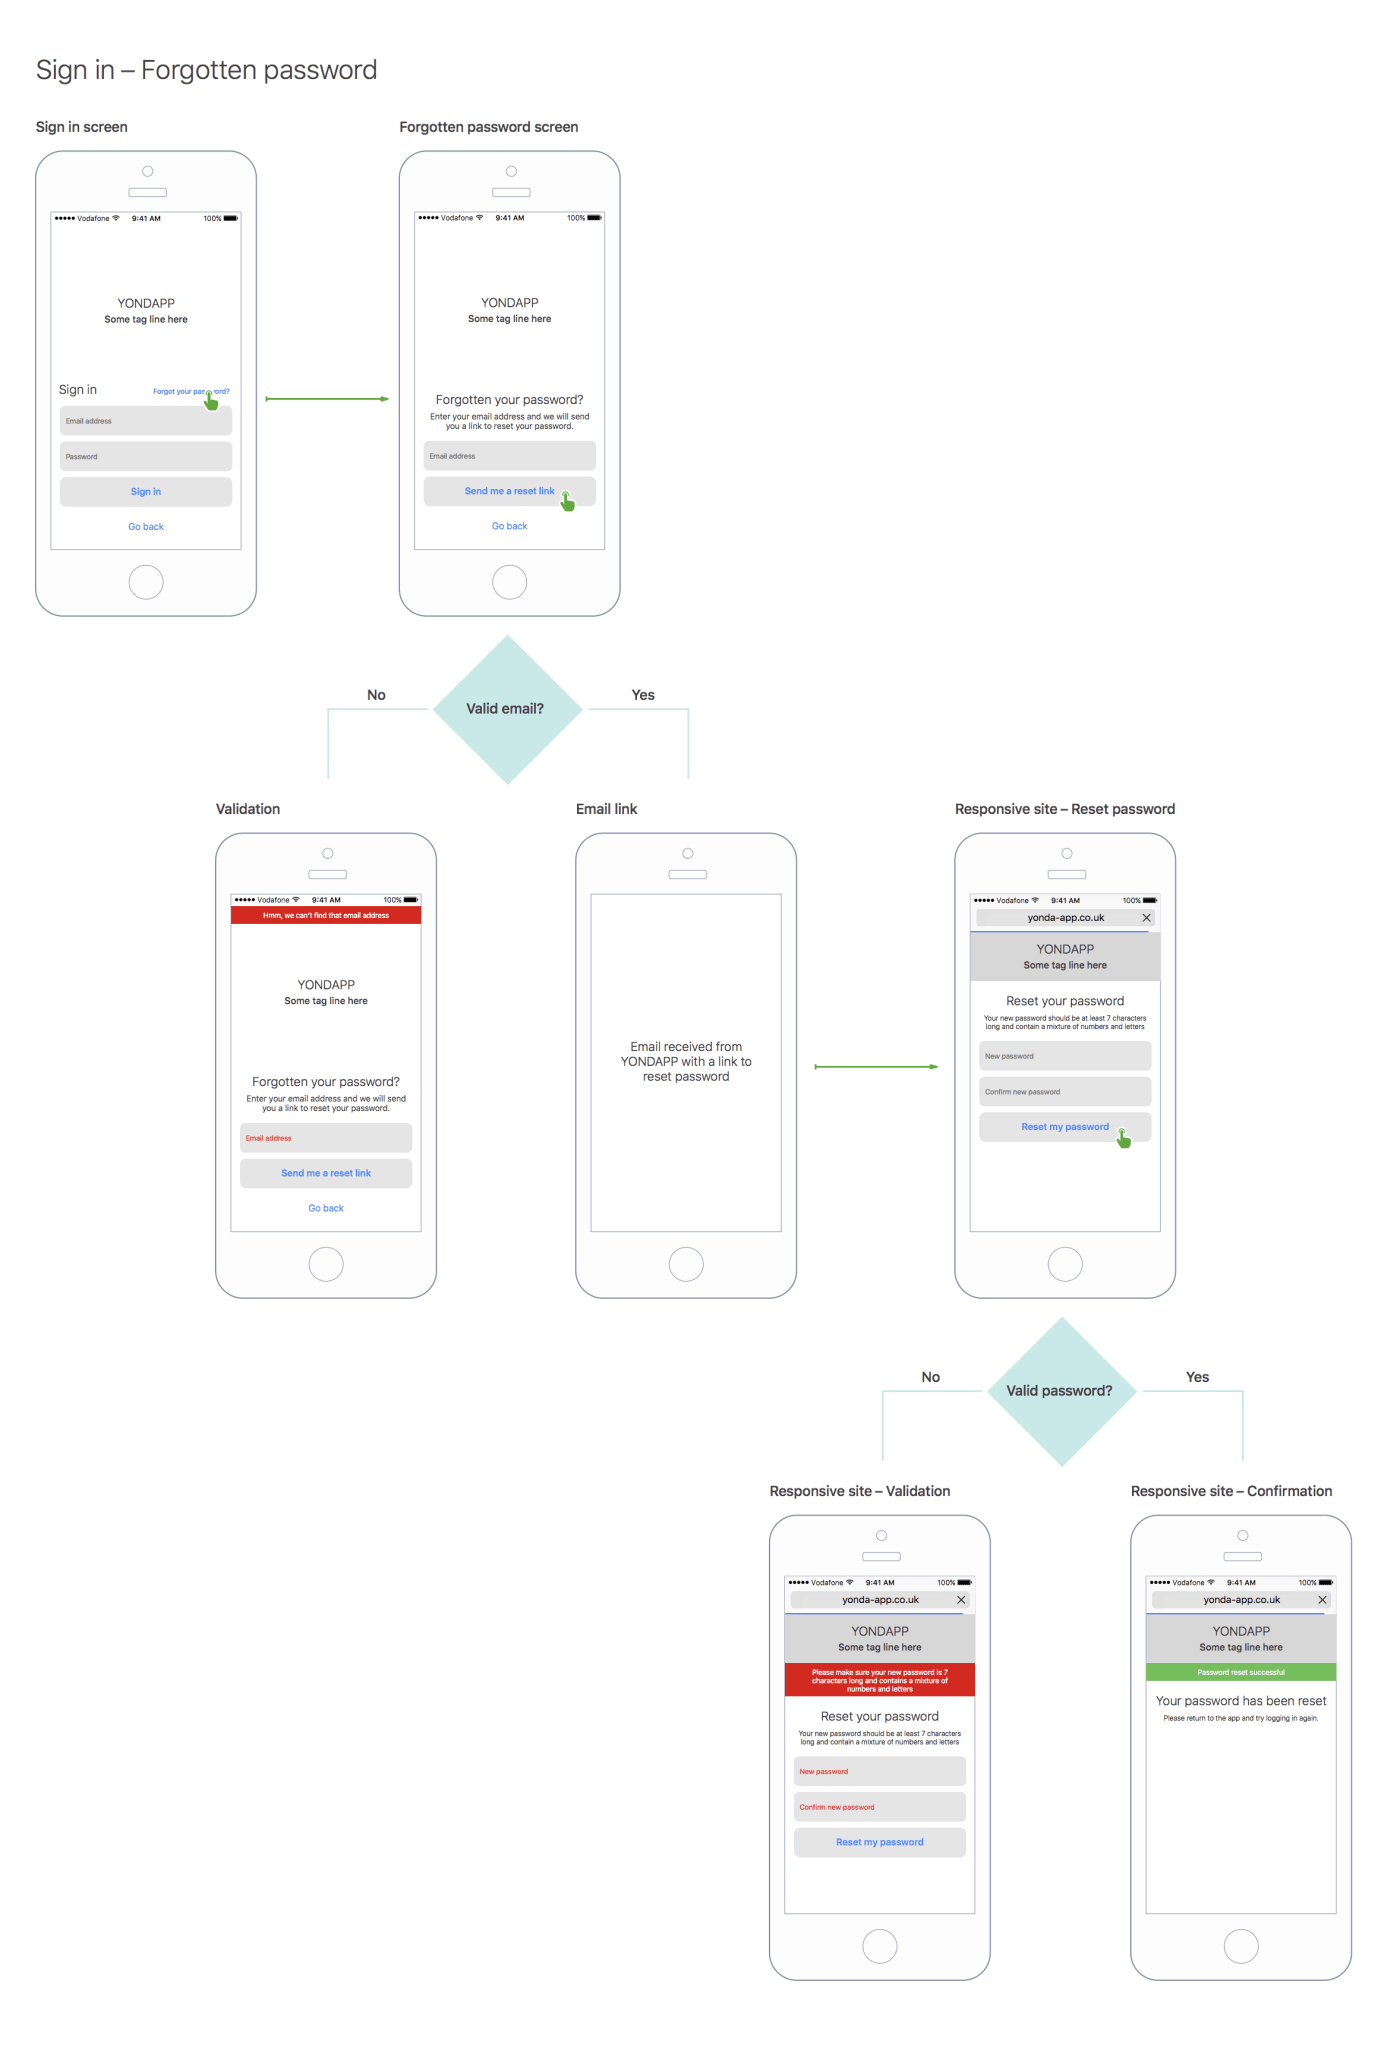 User flows showing how a user should reset their password.